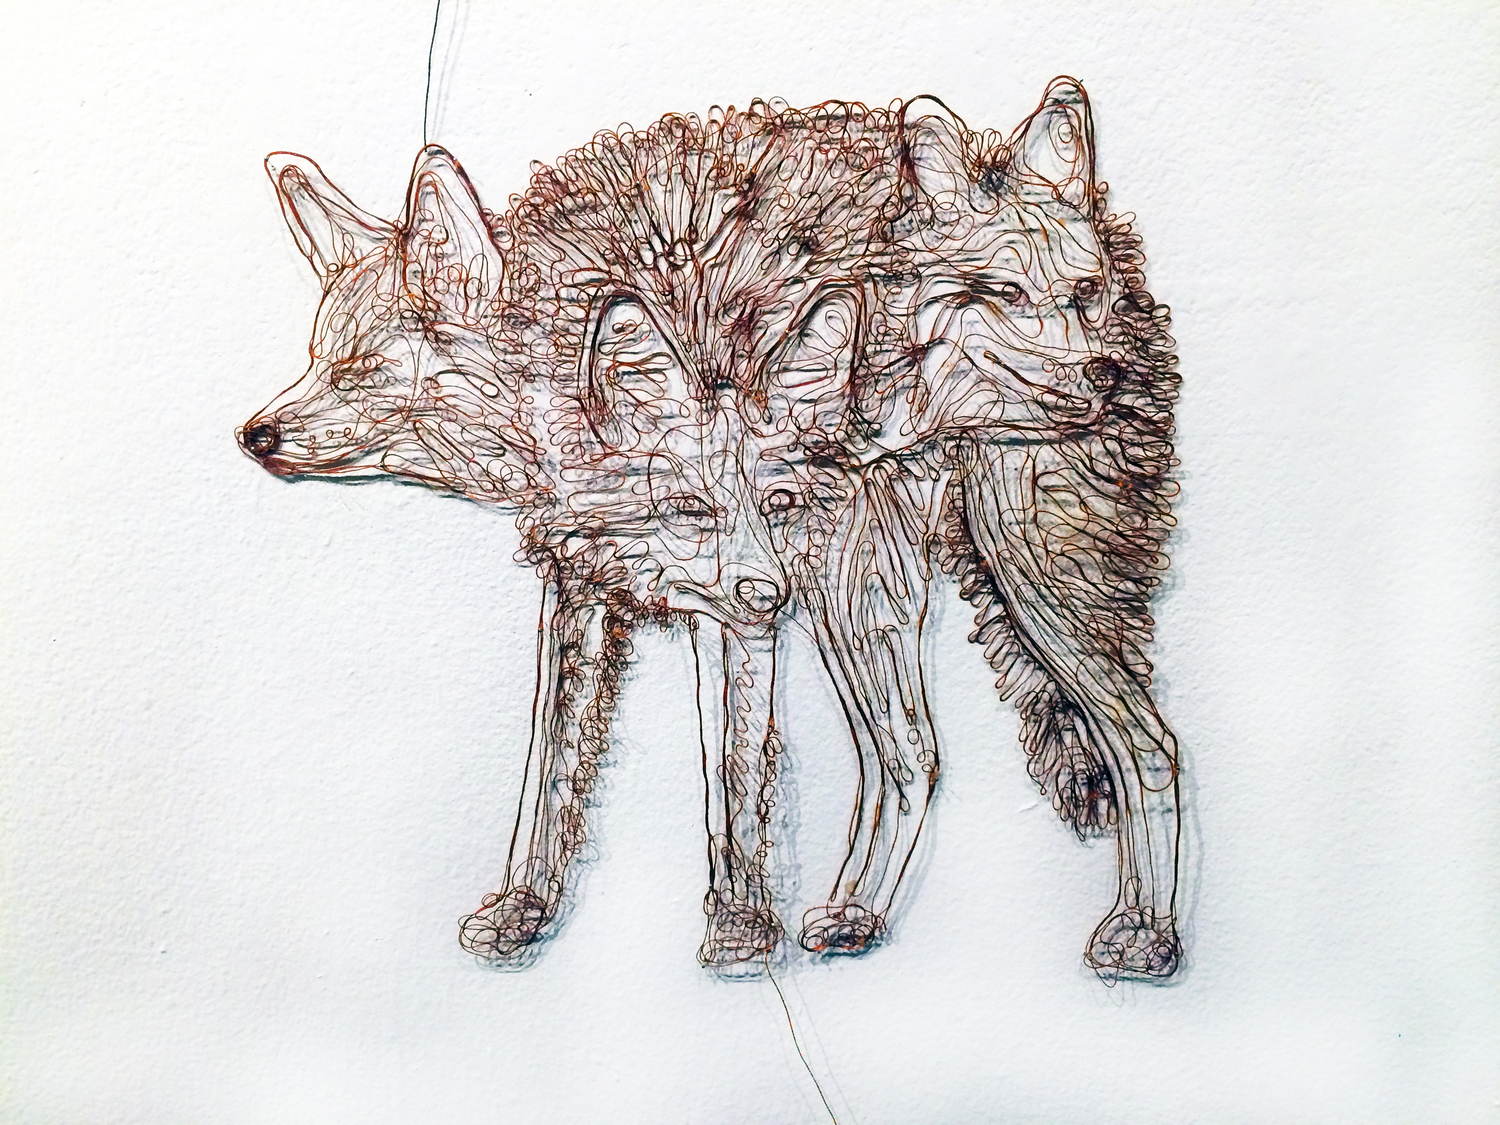 TAYLOR_BETHANY_COYOTE_THREAD_22in_22in.jpg